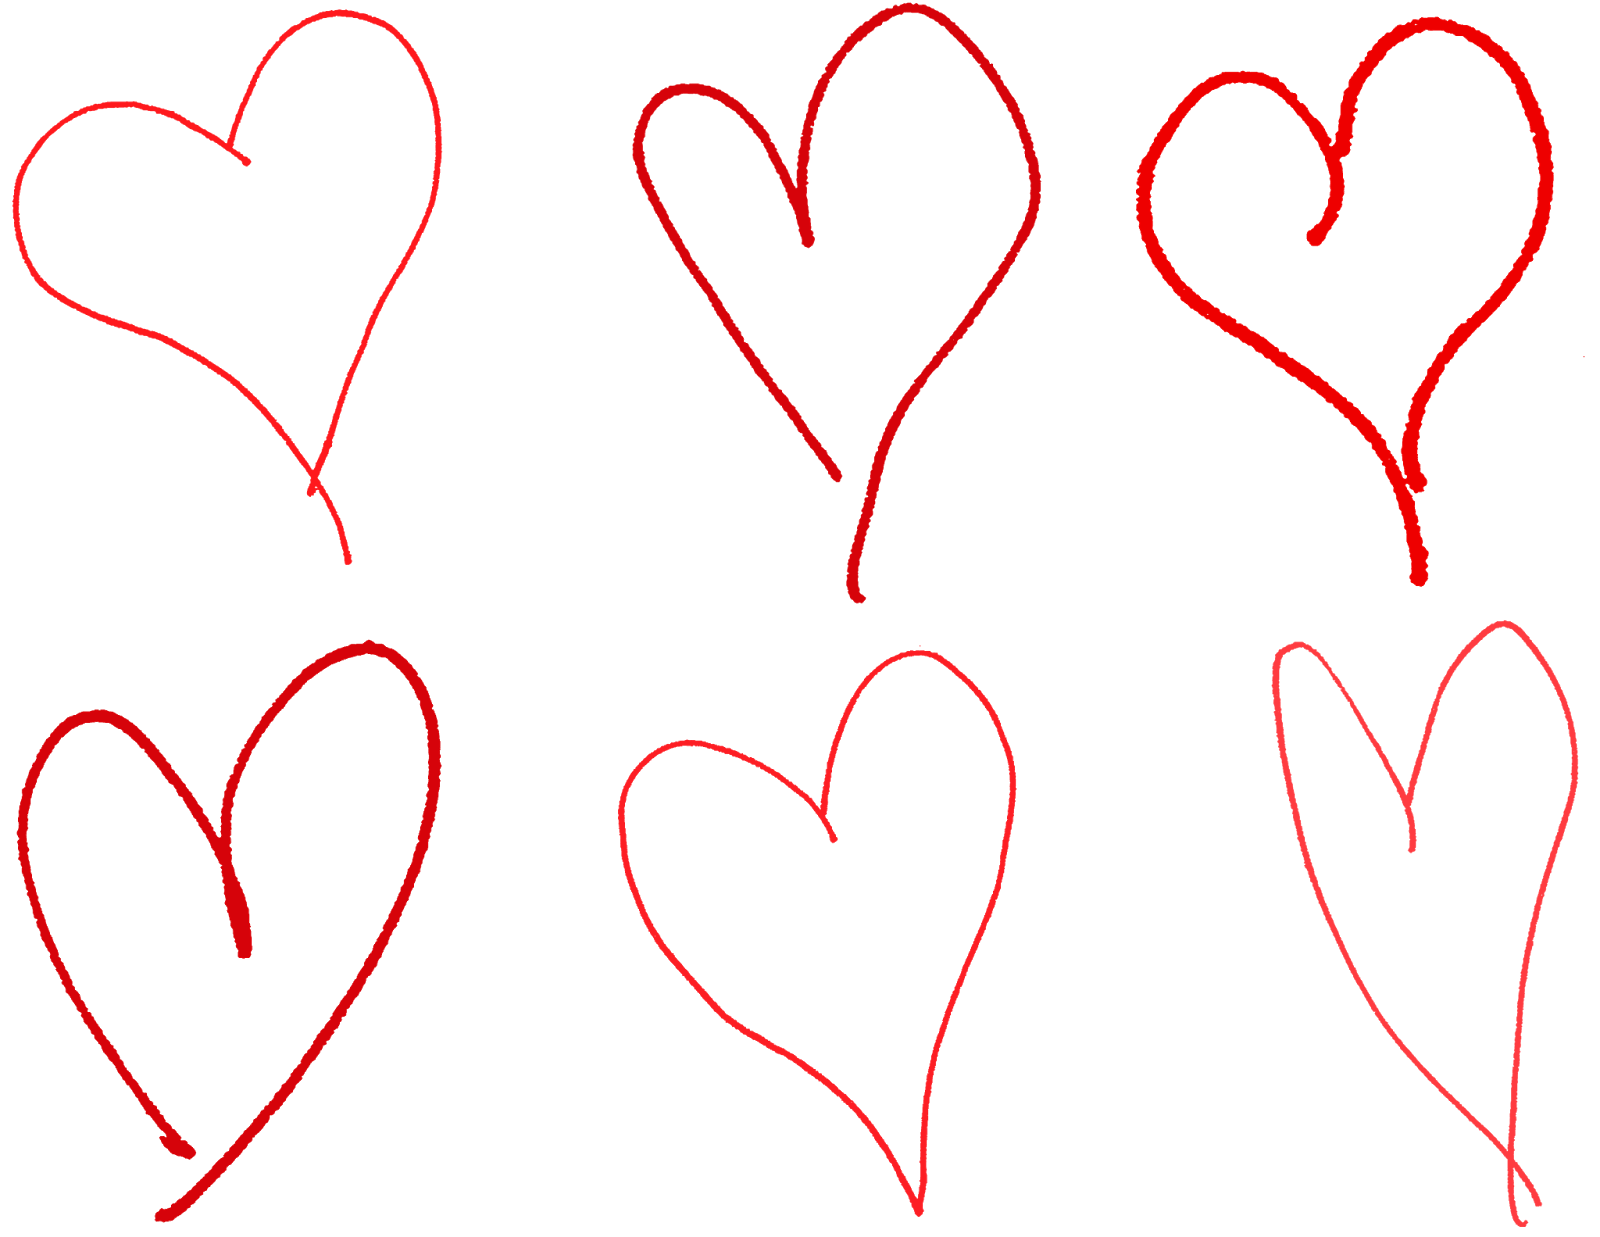 Drawing clipart heart. Digital stamp design hand